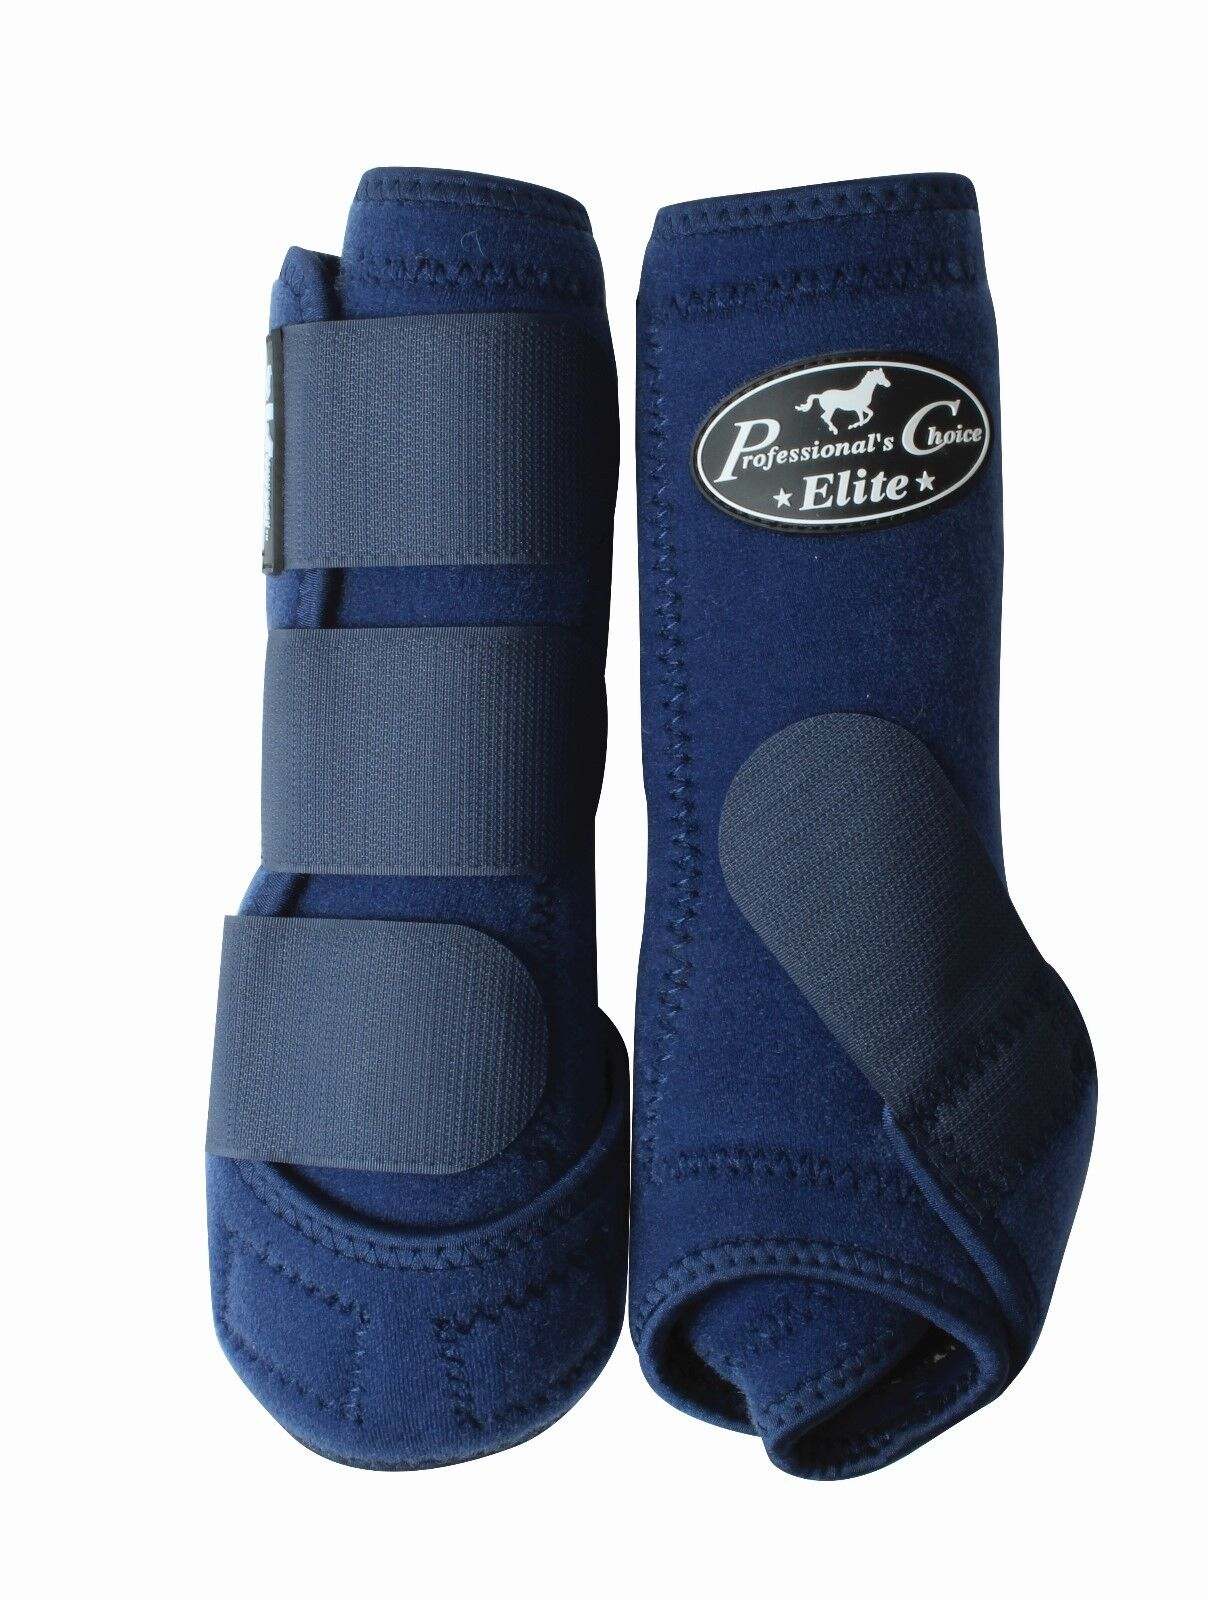 Professional's Choice Ventech  Elite Front Equine SMB Medicine Boots Navy bluee  buy best